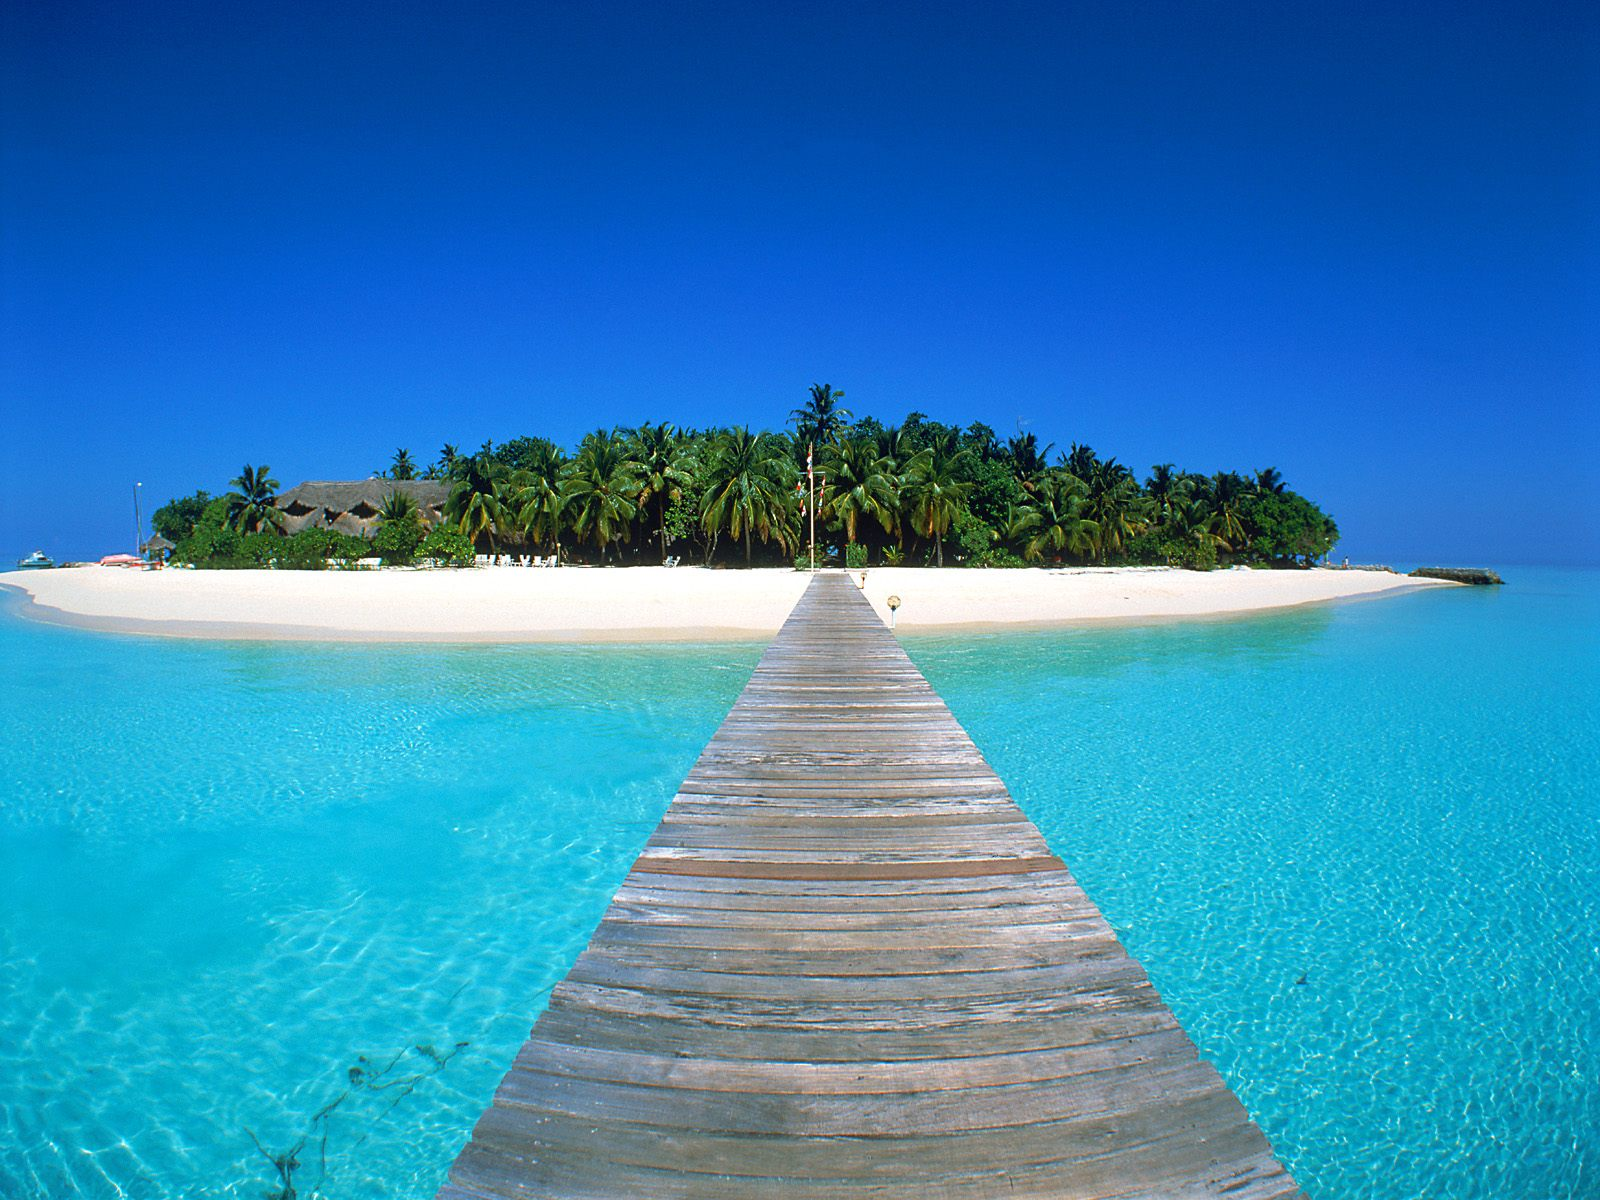 amazing beautiful maldives islands hd quality widescreen free download wallpapers En Güzel Masaüstü Resimleri